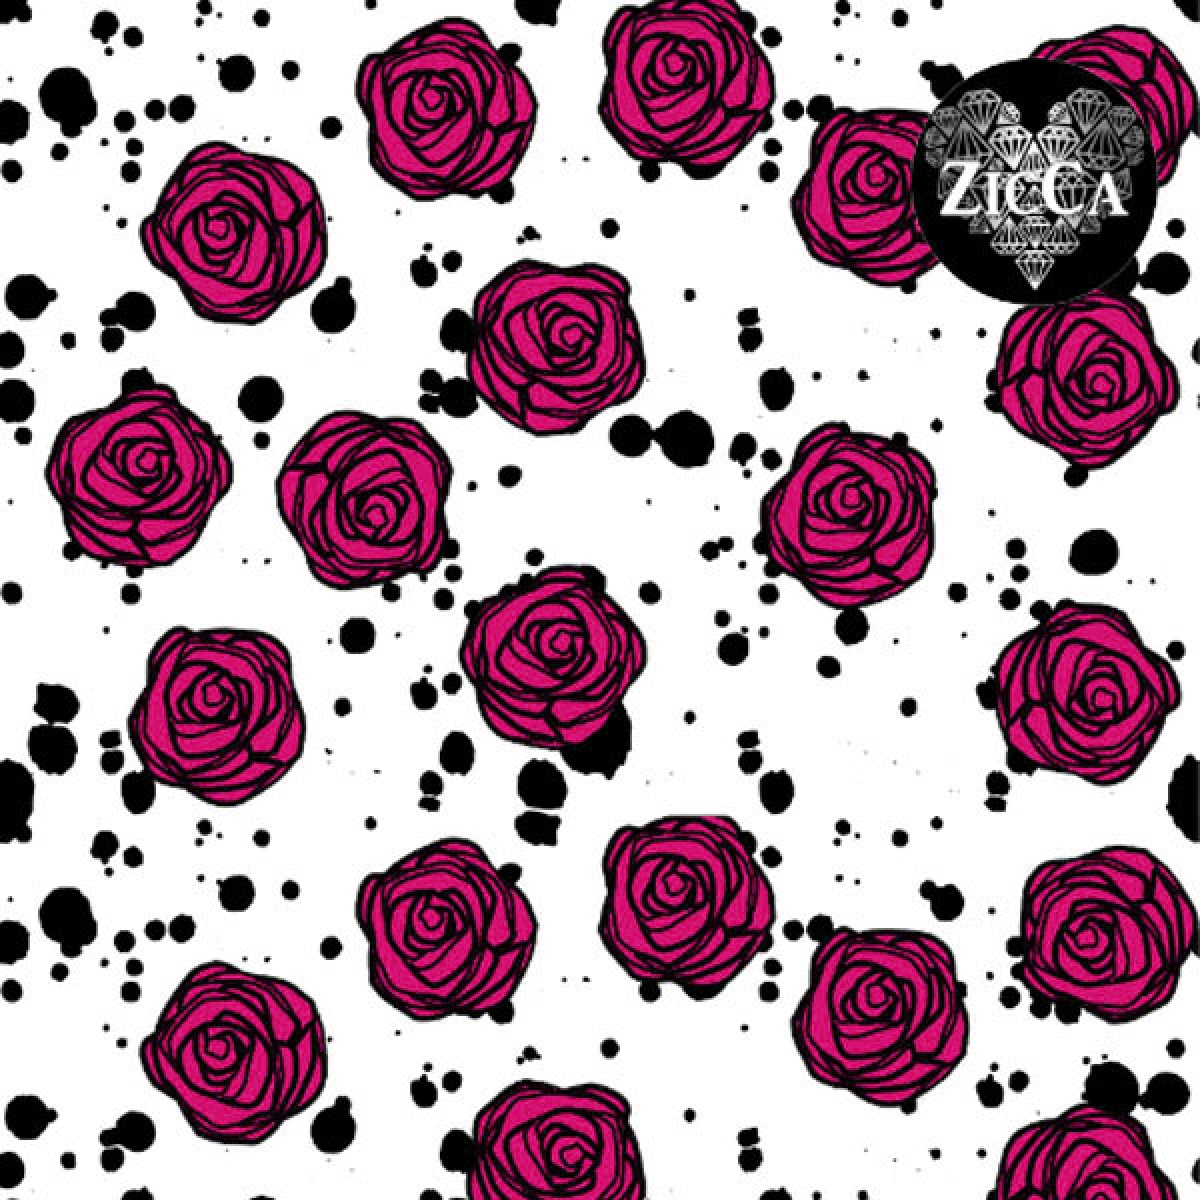 Rose Splash (pink)